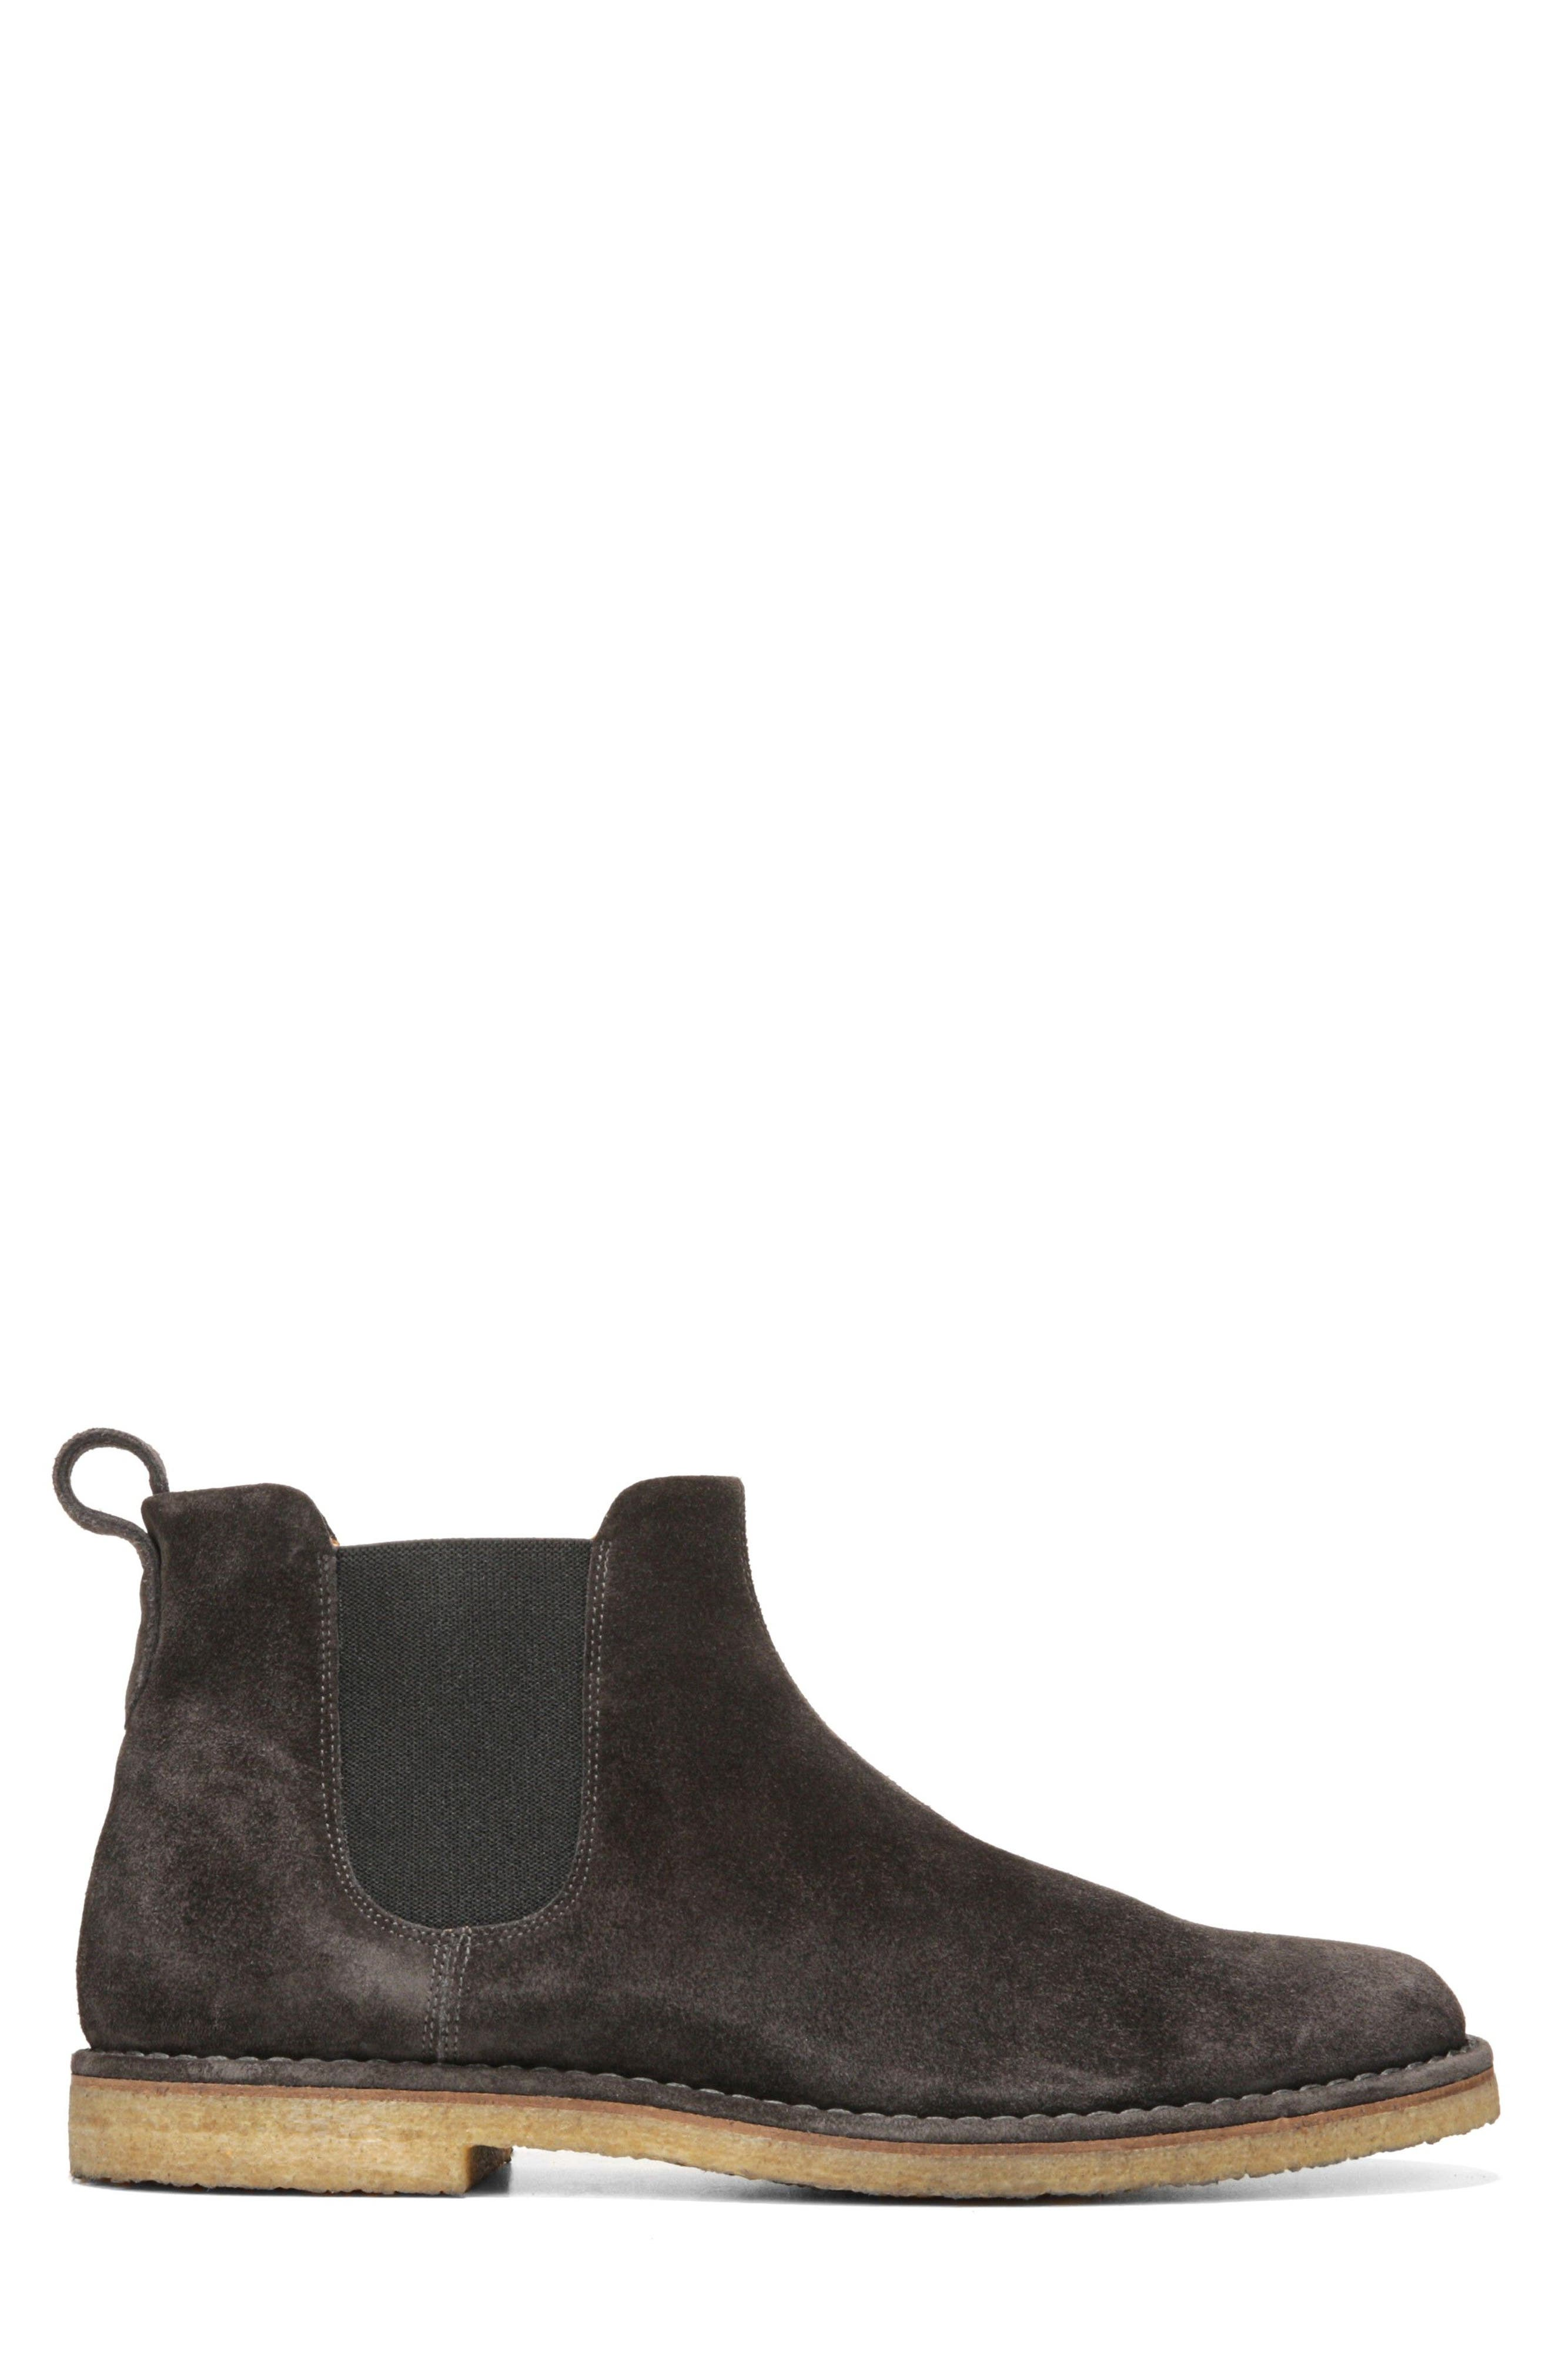 VINCE,                             'Sawyer' Chelsea Boot,                             Alternate thumbnail 3, color,                             021